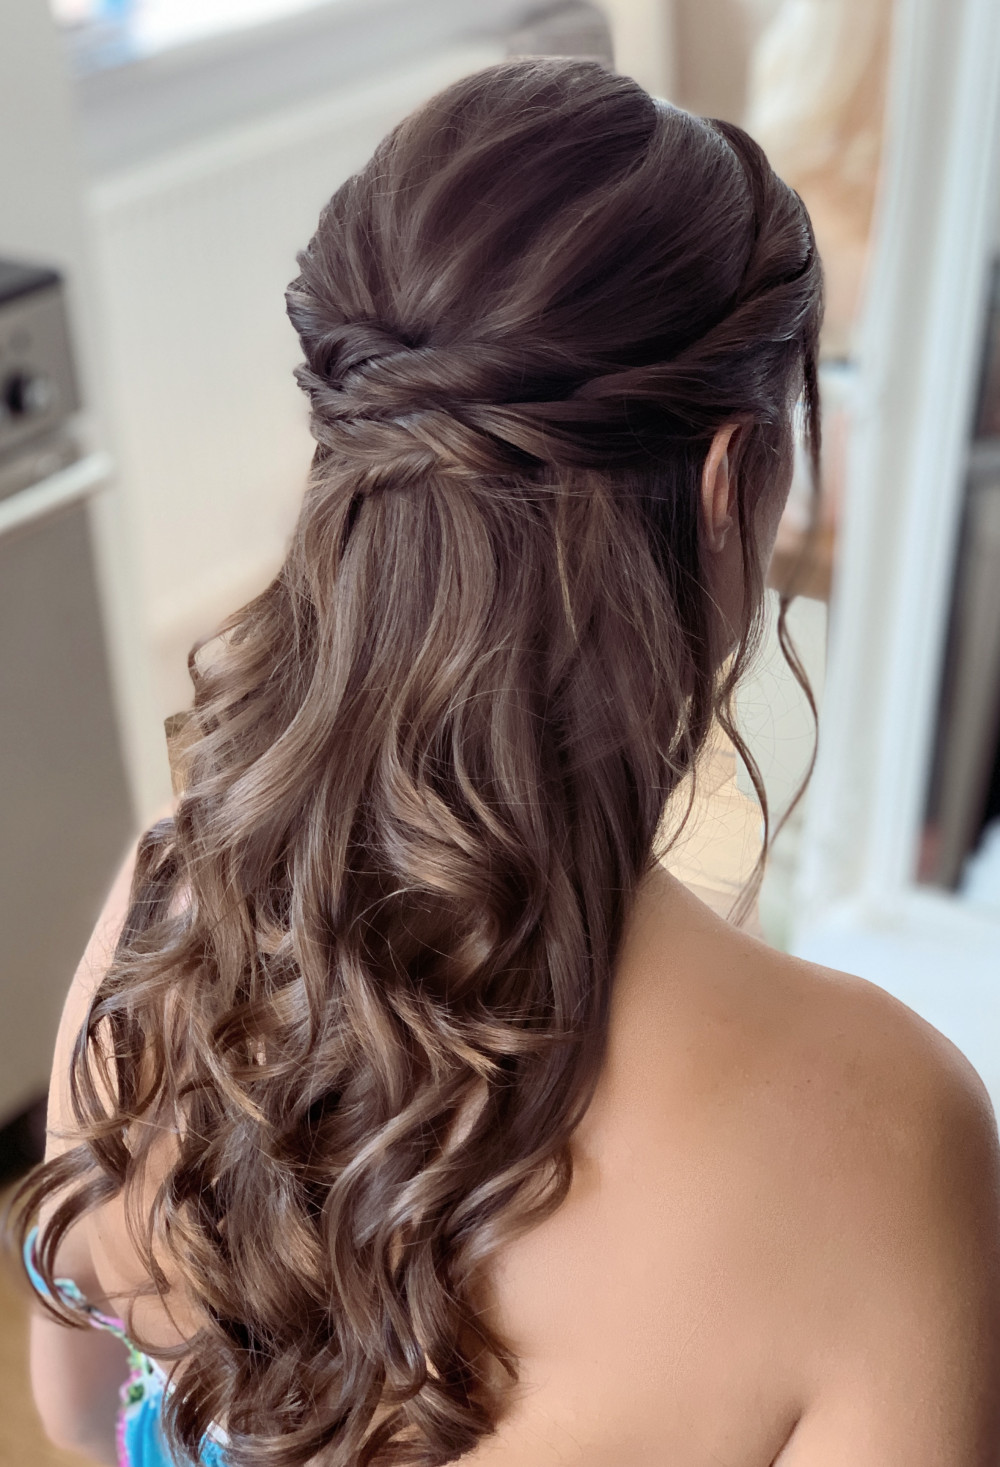 Half up style with curls - Make Me Bridal Artist: Abigail Blake.